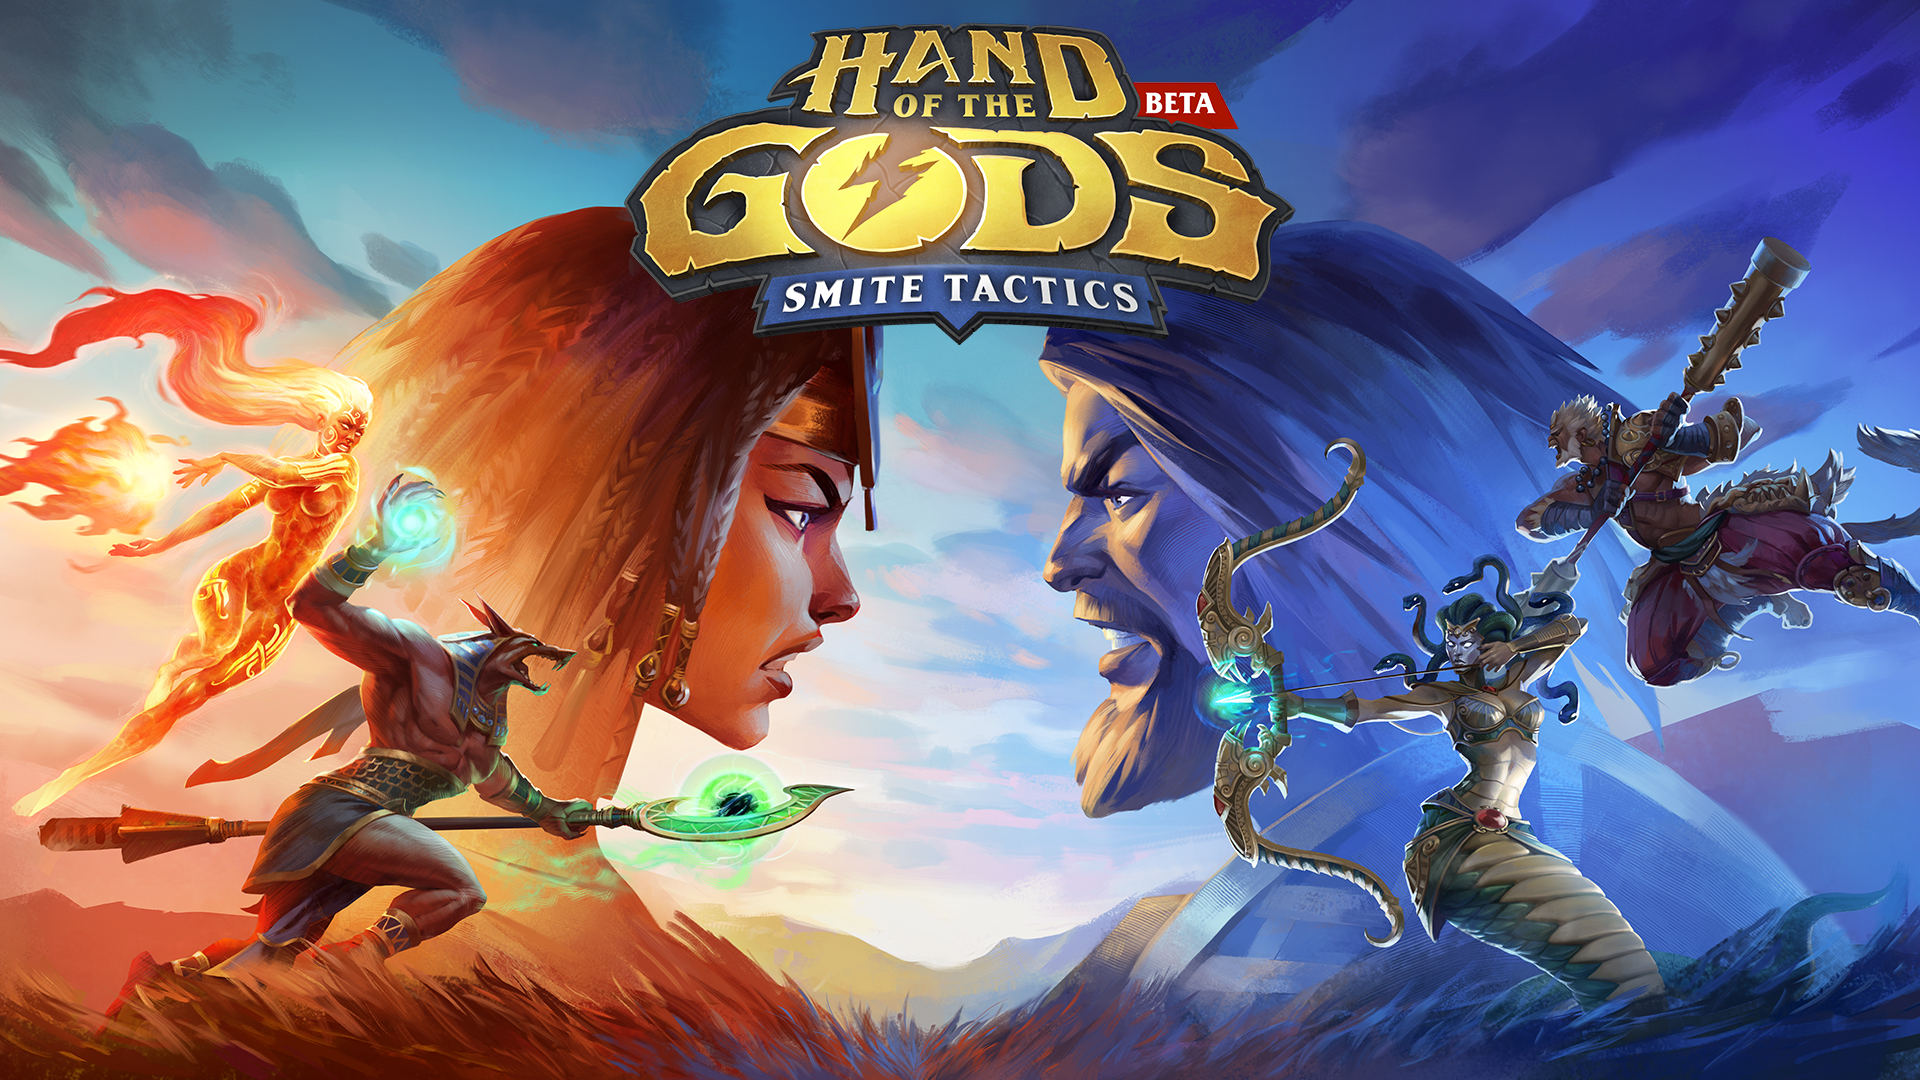 hand of the gods console closed beta to launch today